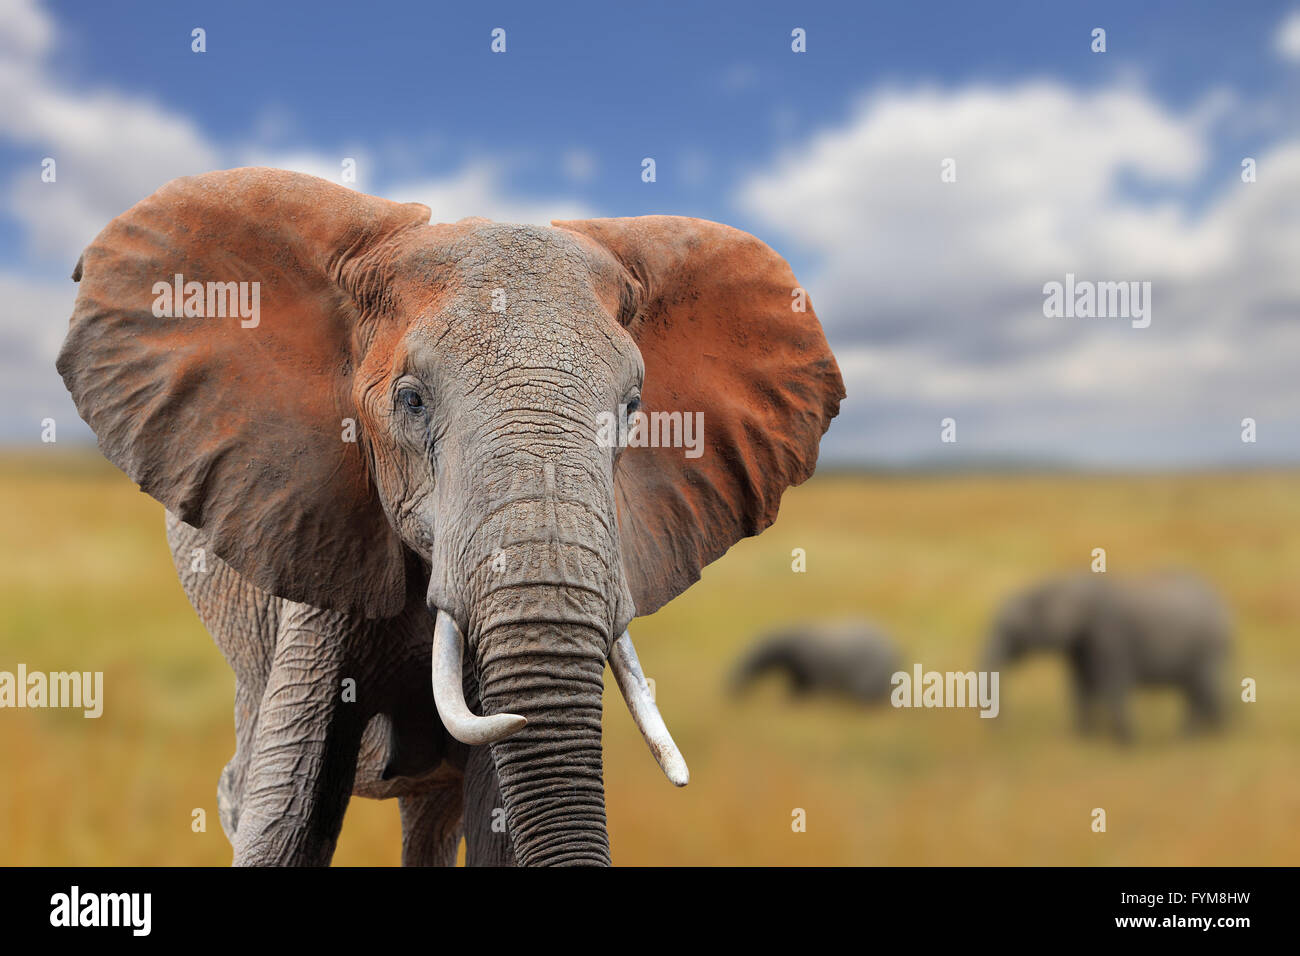 Elephant on savannah in Africa, National park of Kenya - Stock Image